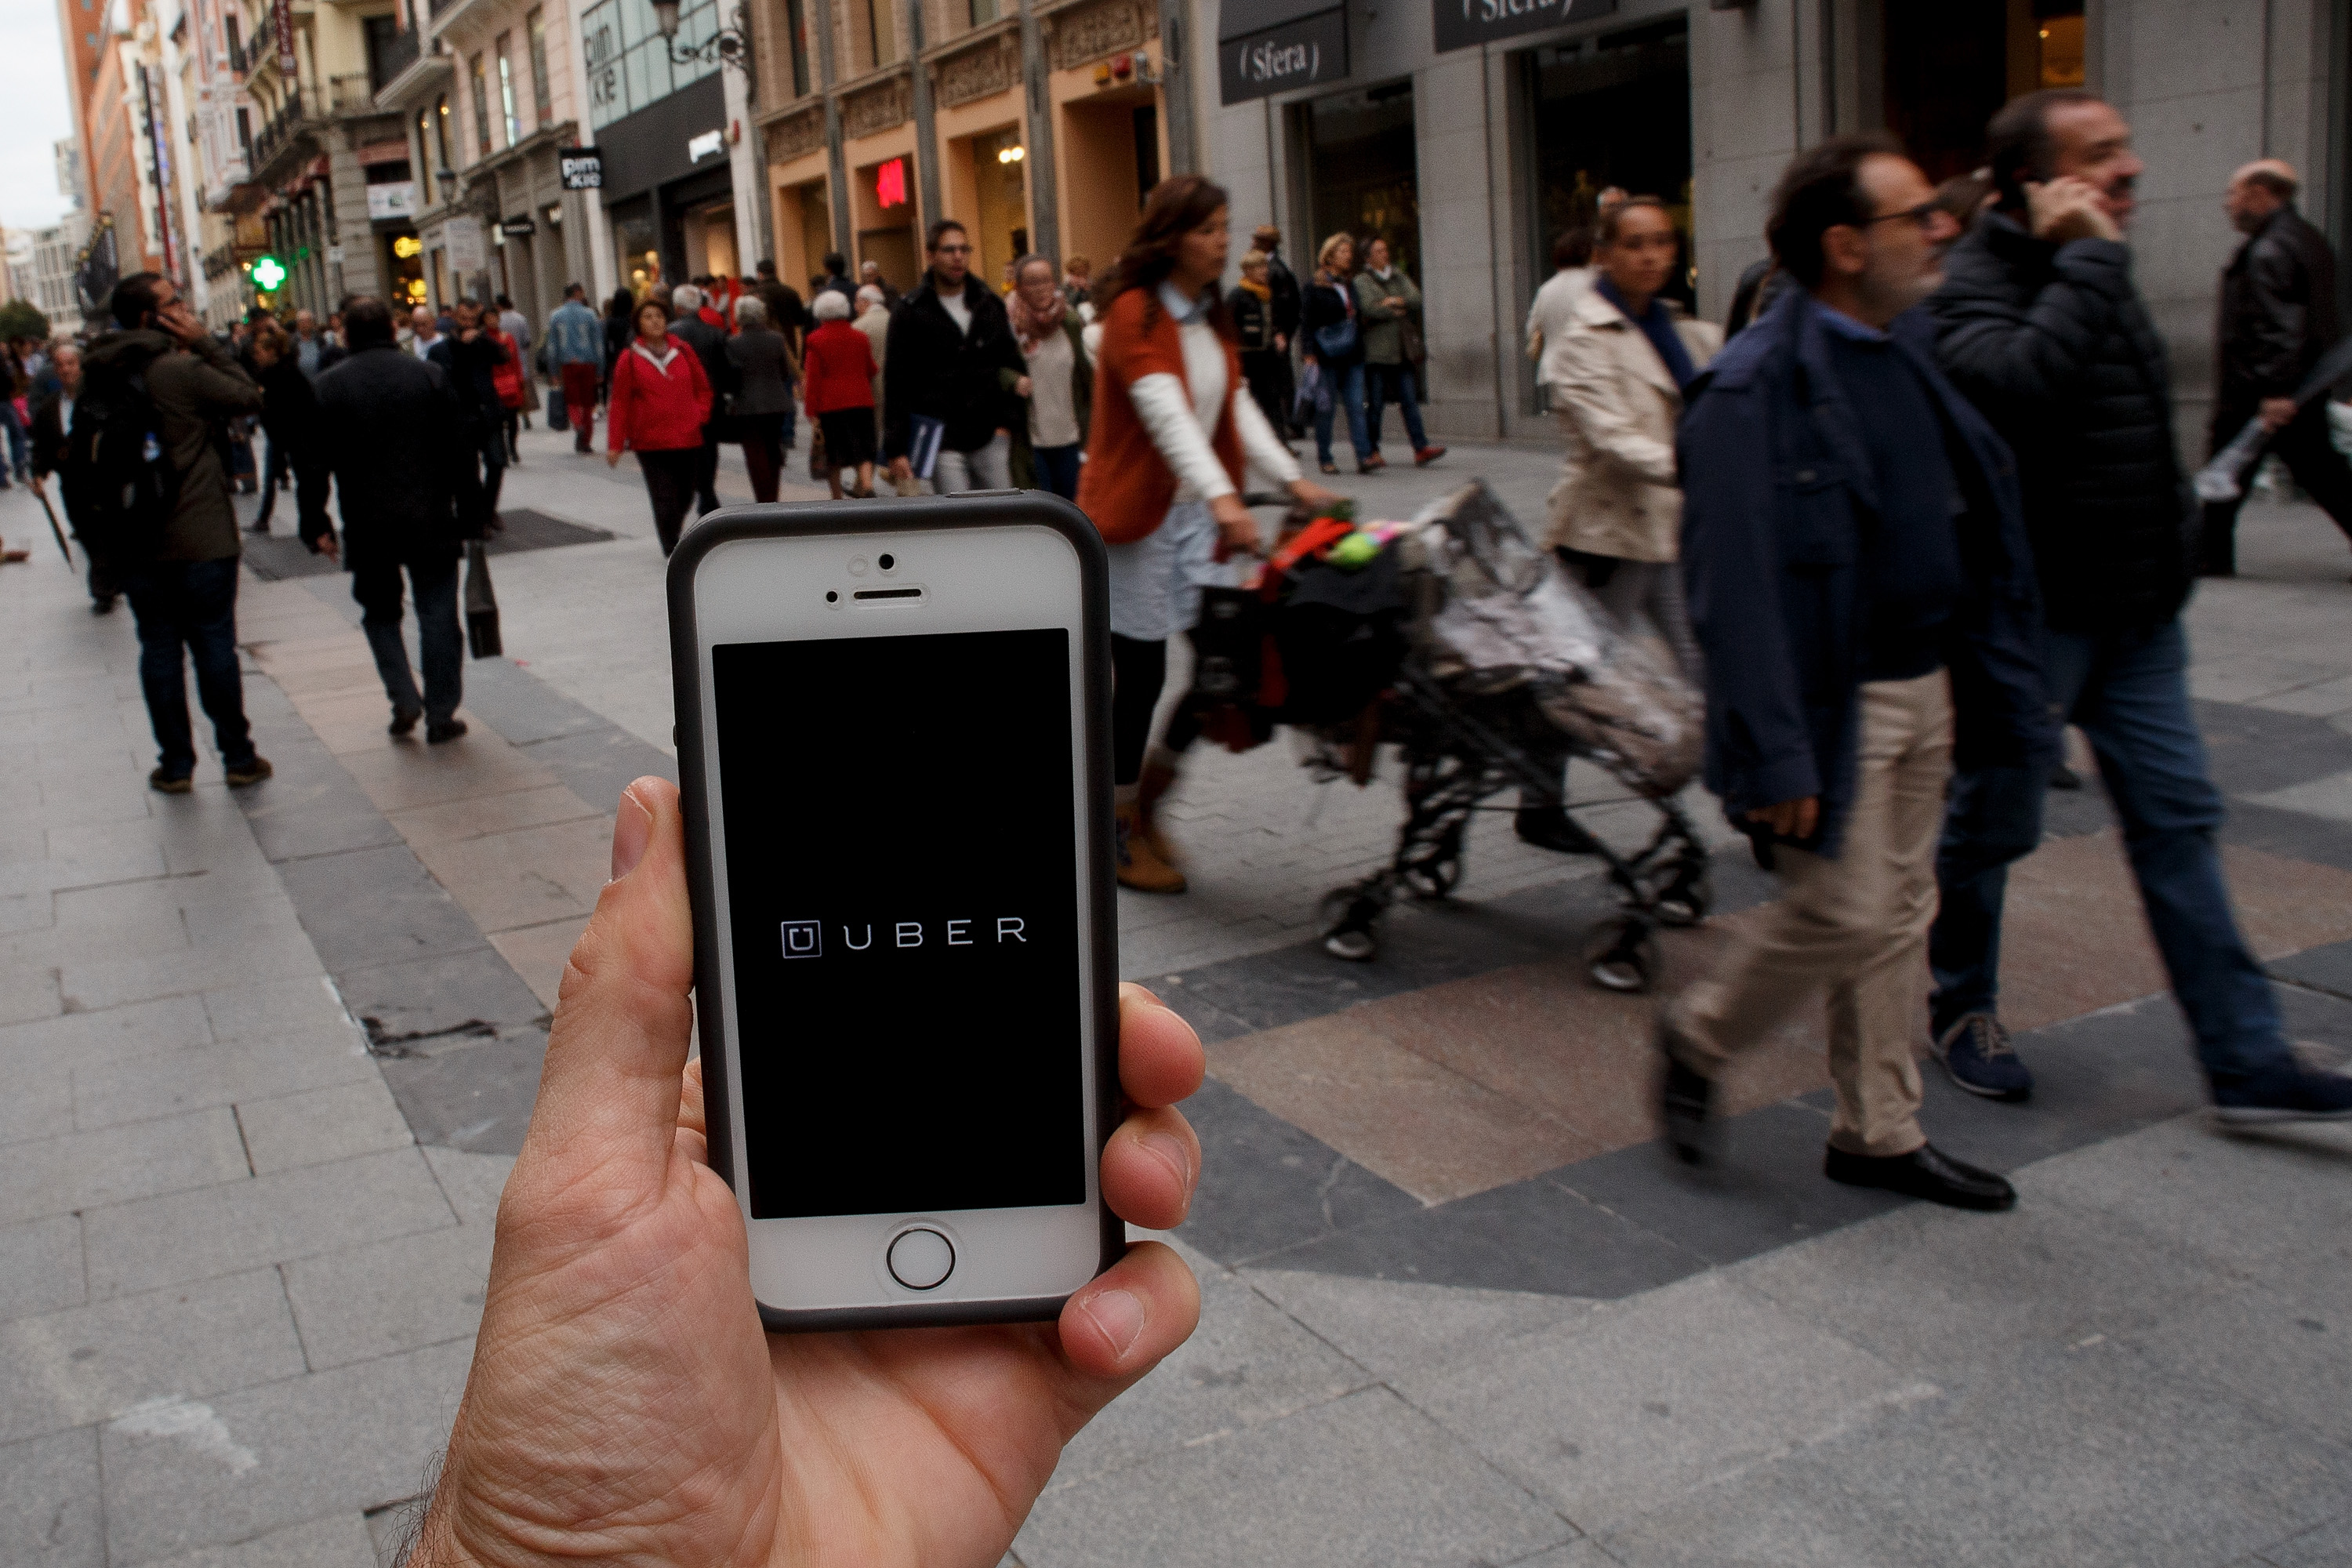 The Uber app. (Photo: Dominguez/Getty Images)